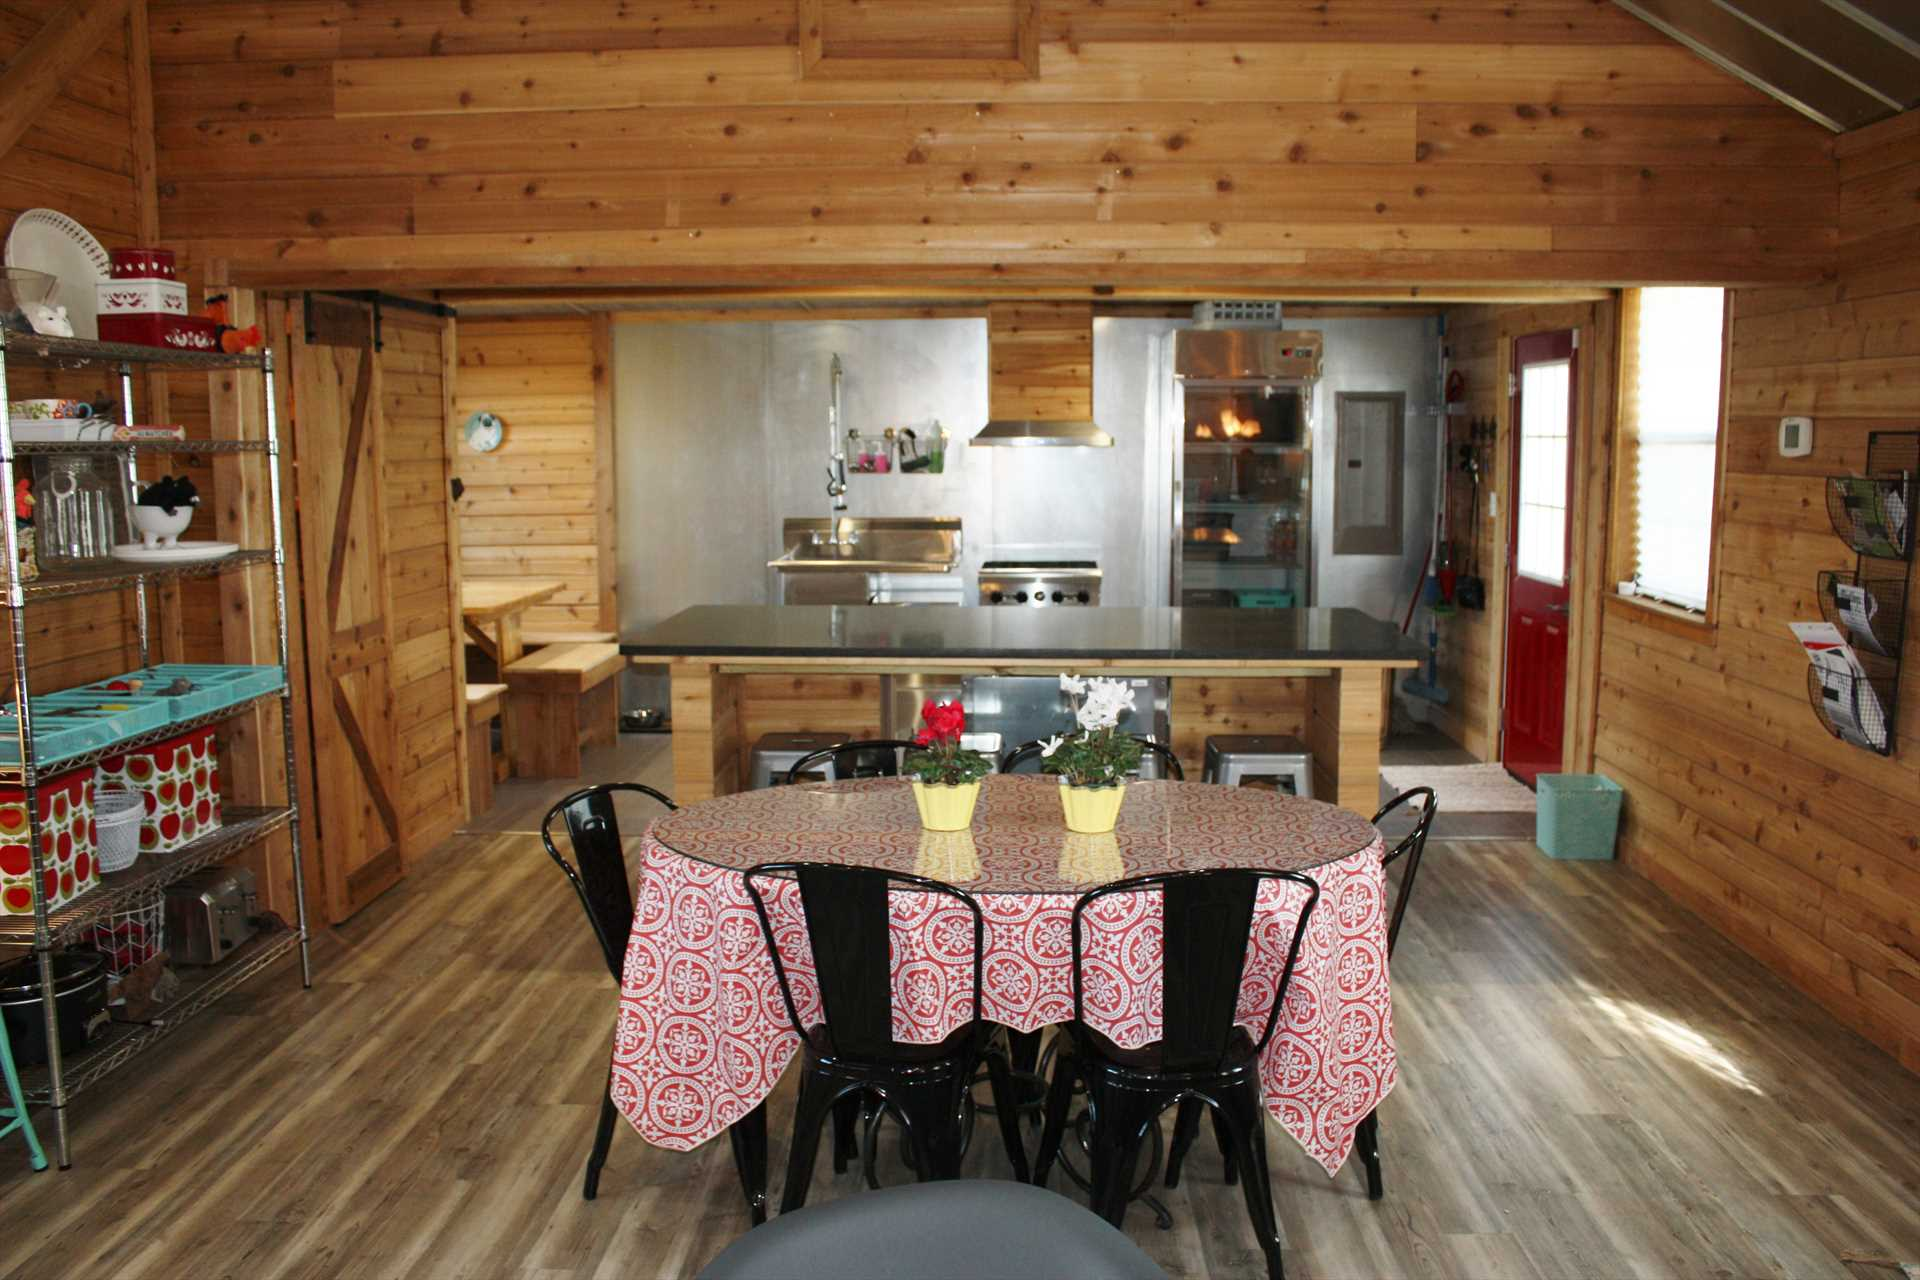 With the dining table, bar seating, and breakfast nook, there's space to dig in for up to 13 guests.